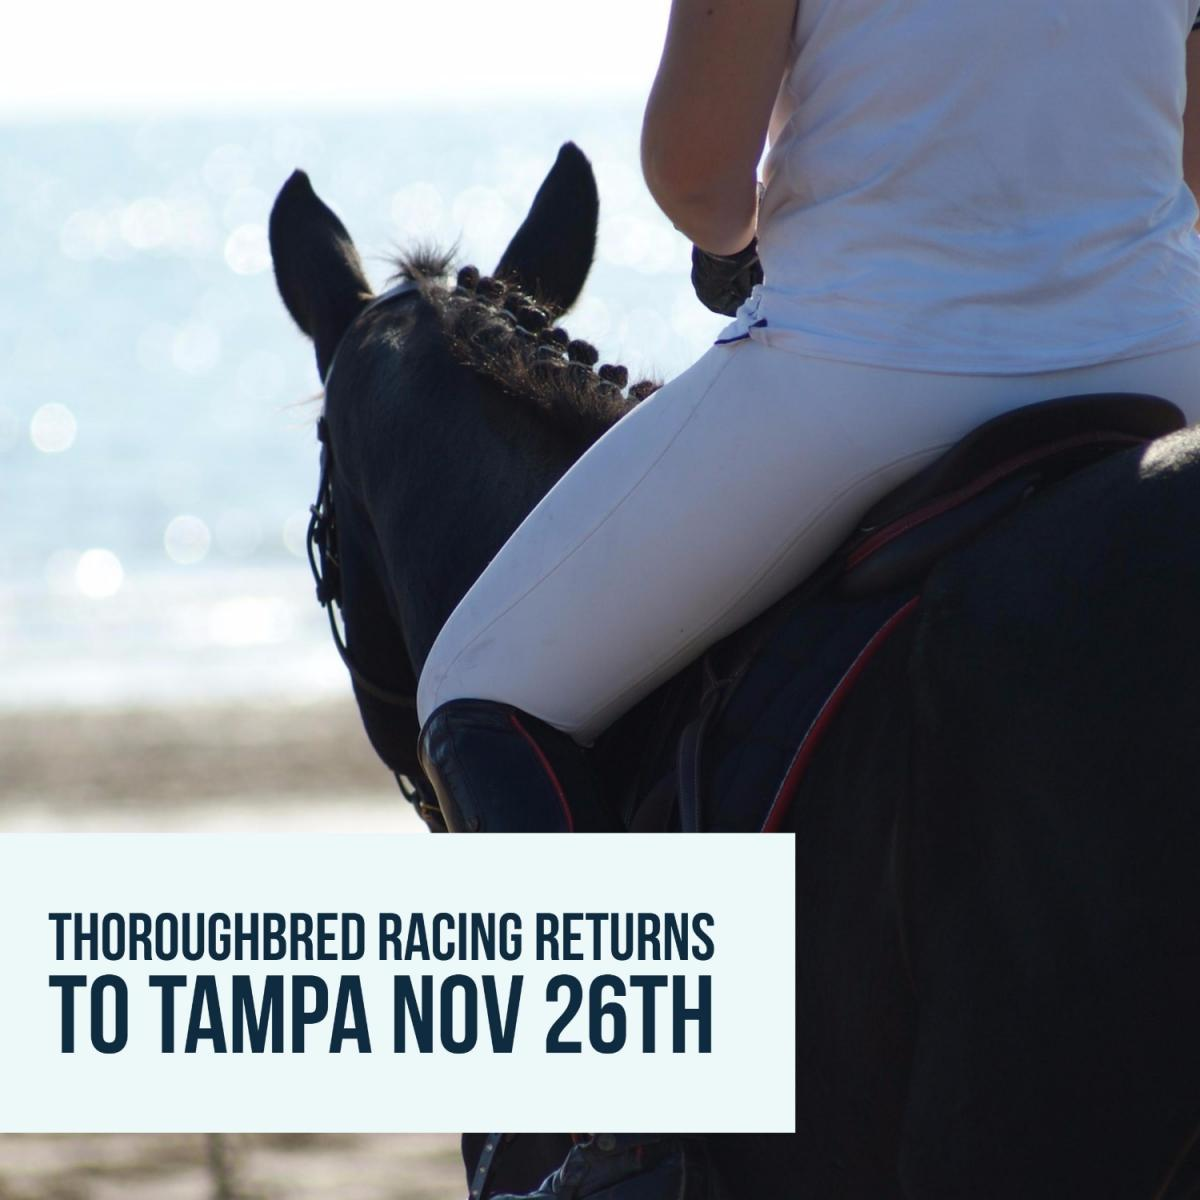 Thankful Tampa Bay Downs and Thoroughbred Racing Returns November 26th